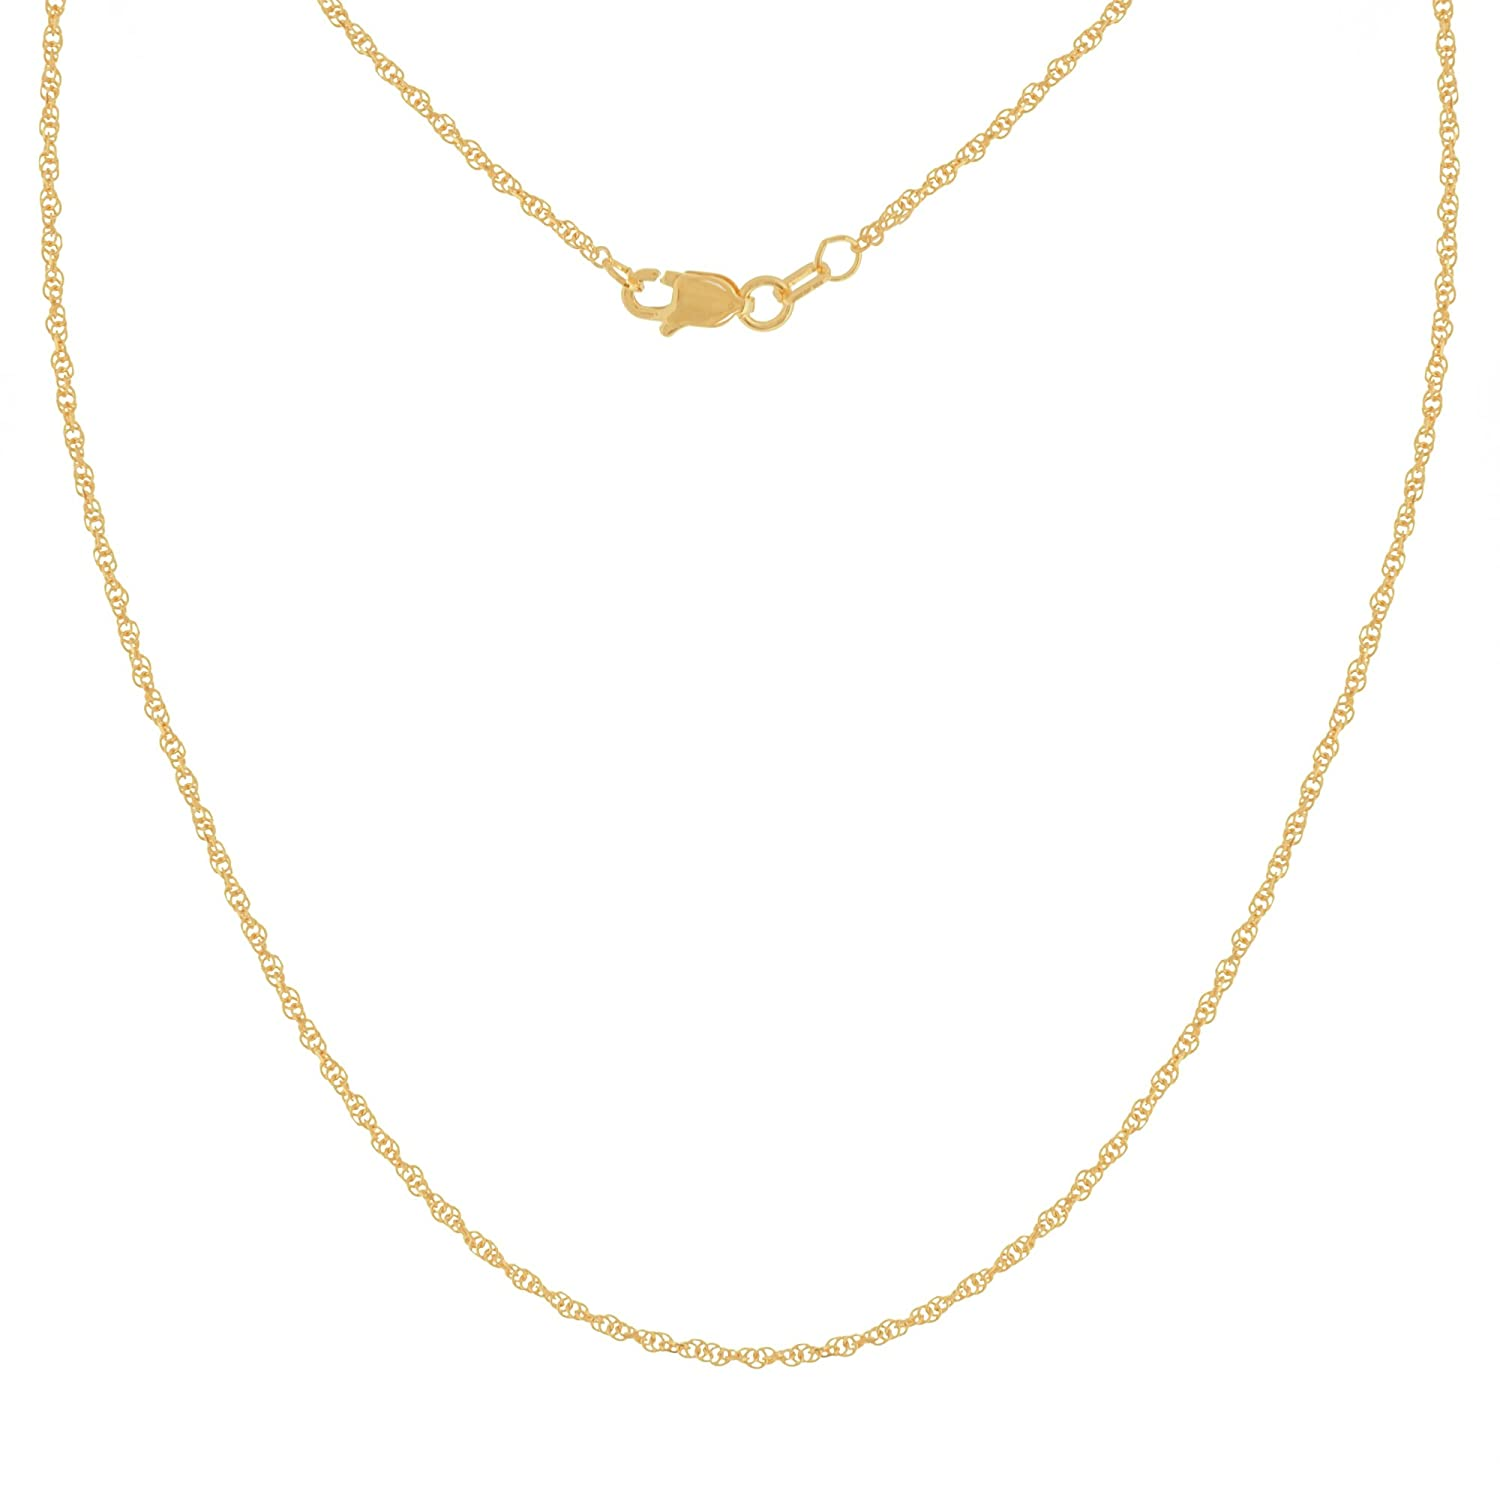 ROPE CHAIN, 10KT GOLD DOUBLE ROPE DIAMOND CUT CHAIN 1.05MM WIDE , 18 INCHES LONG